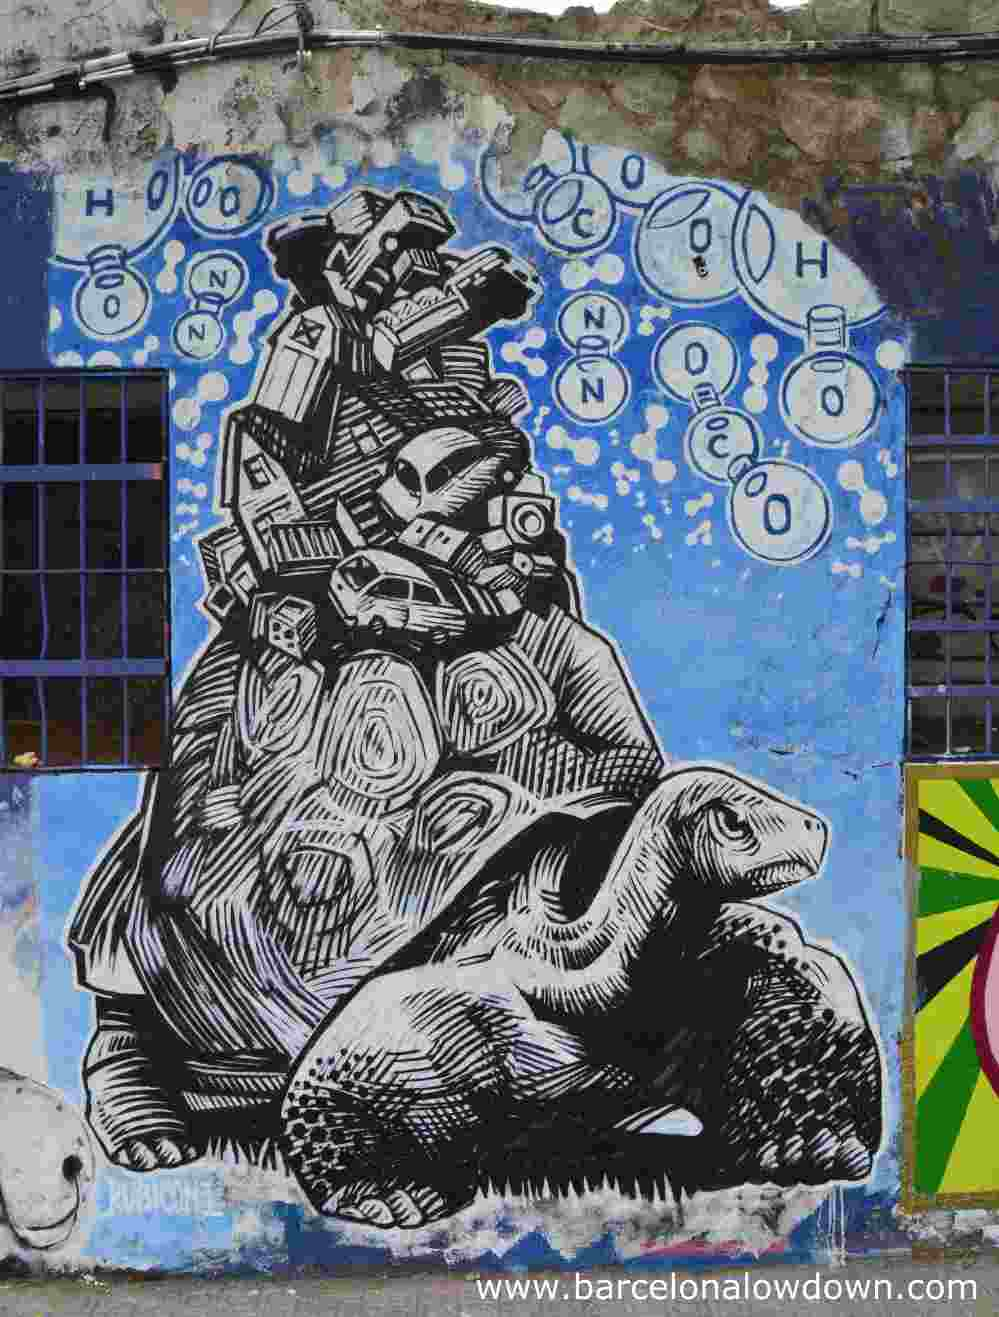 Graffiti in Poblenou, BCN. Painting of an angry looking tortoise carrying a ton of cars and trucks on his back.